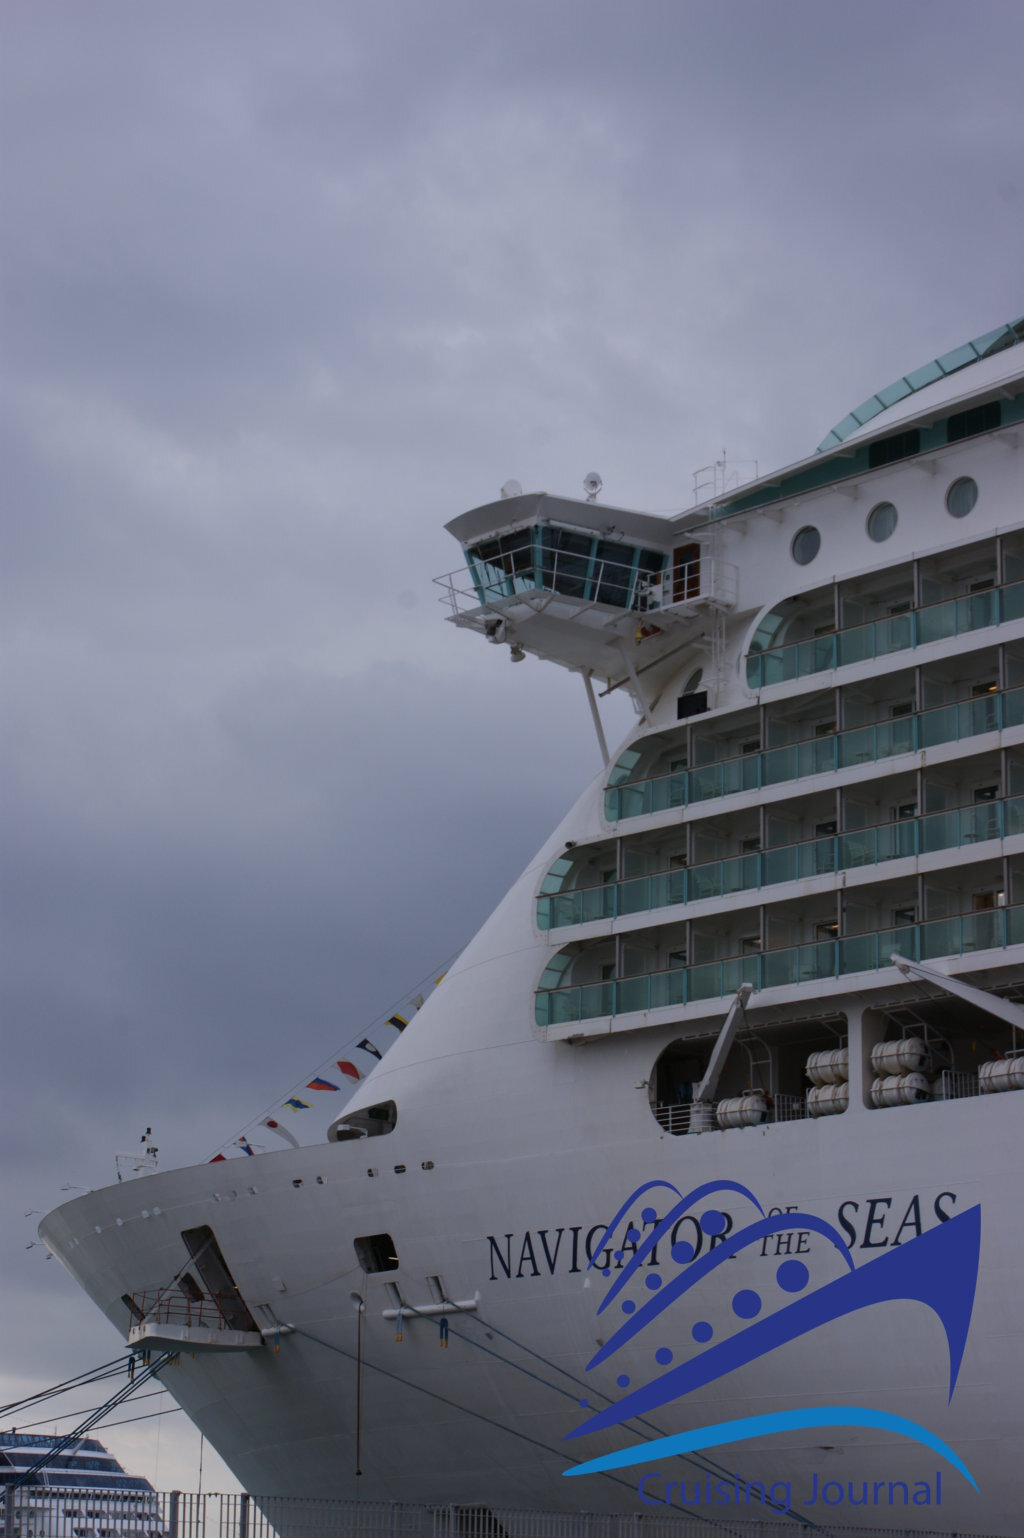 A stroll onboard the Navigator of the Seas